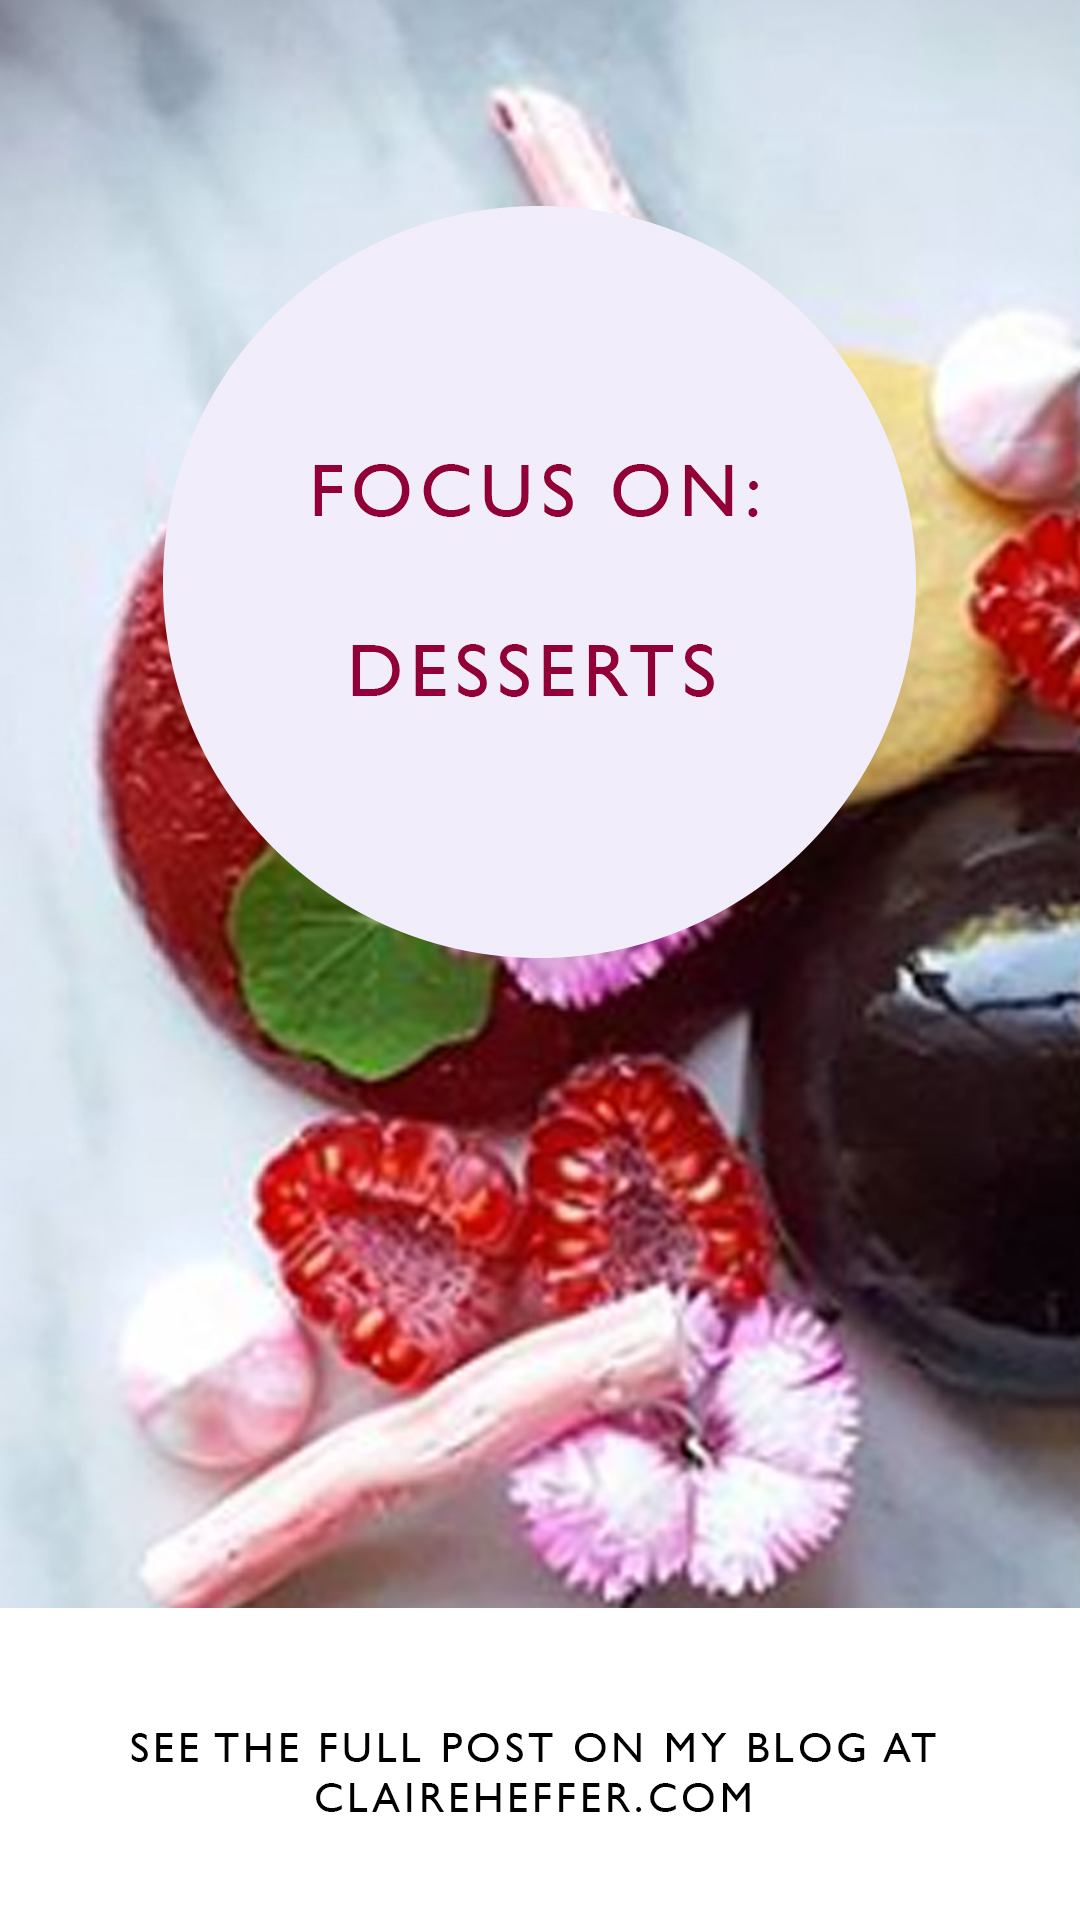 FOCUS ON DESSERTS, RECIPE TIPS, CAKES AND PIES, PRETTY FOOD PORN ON INSTAGRAM